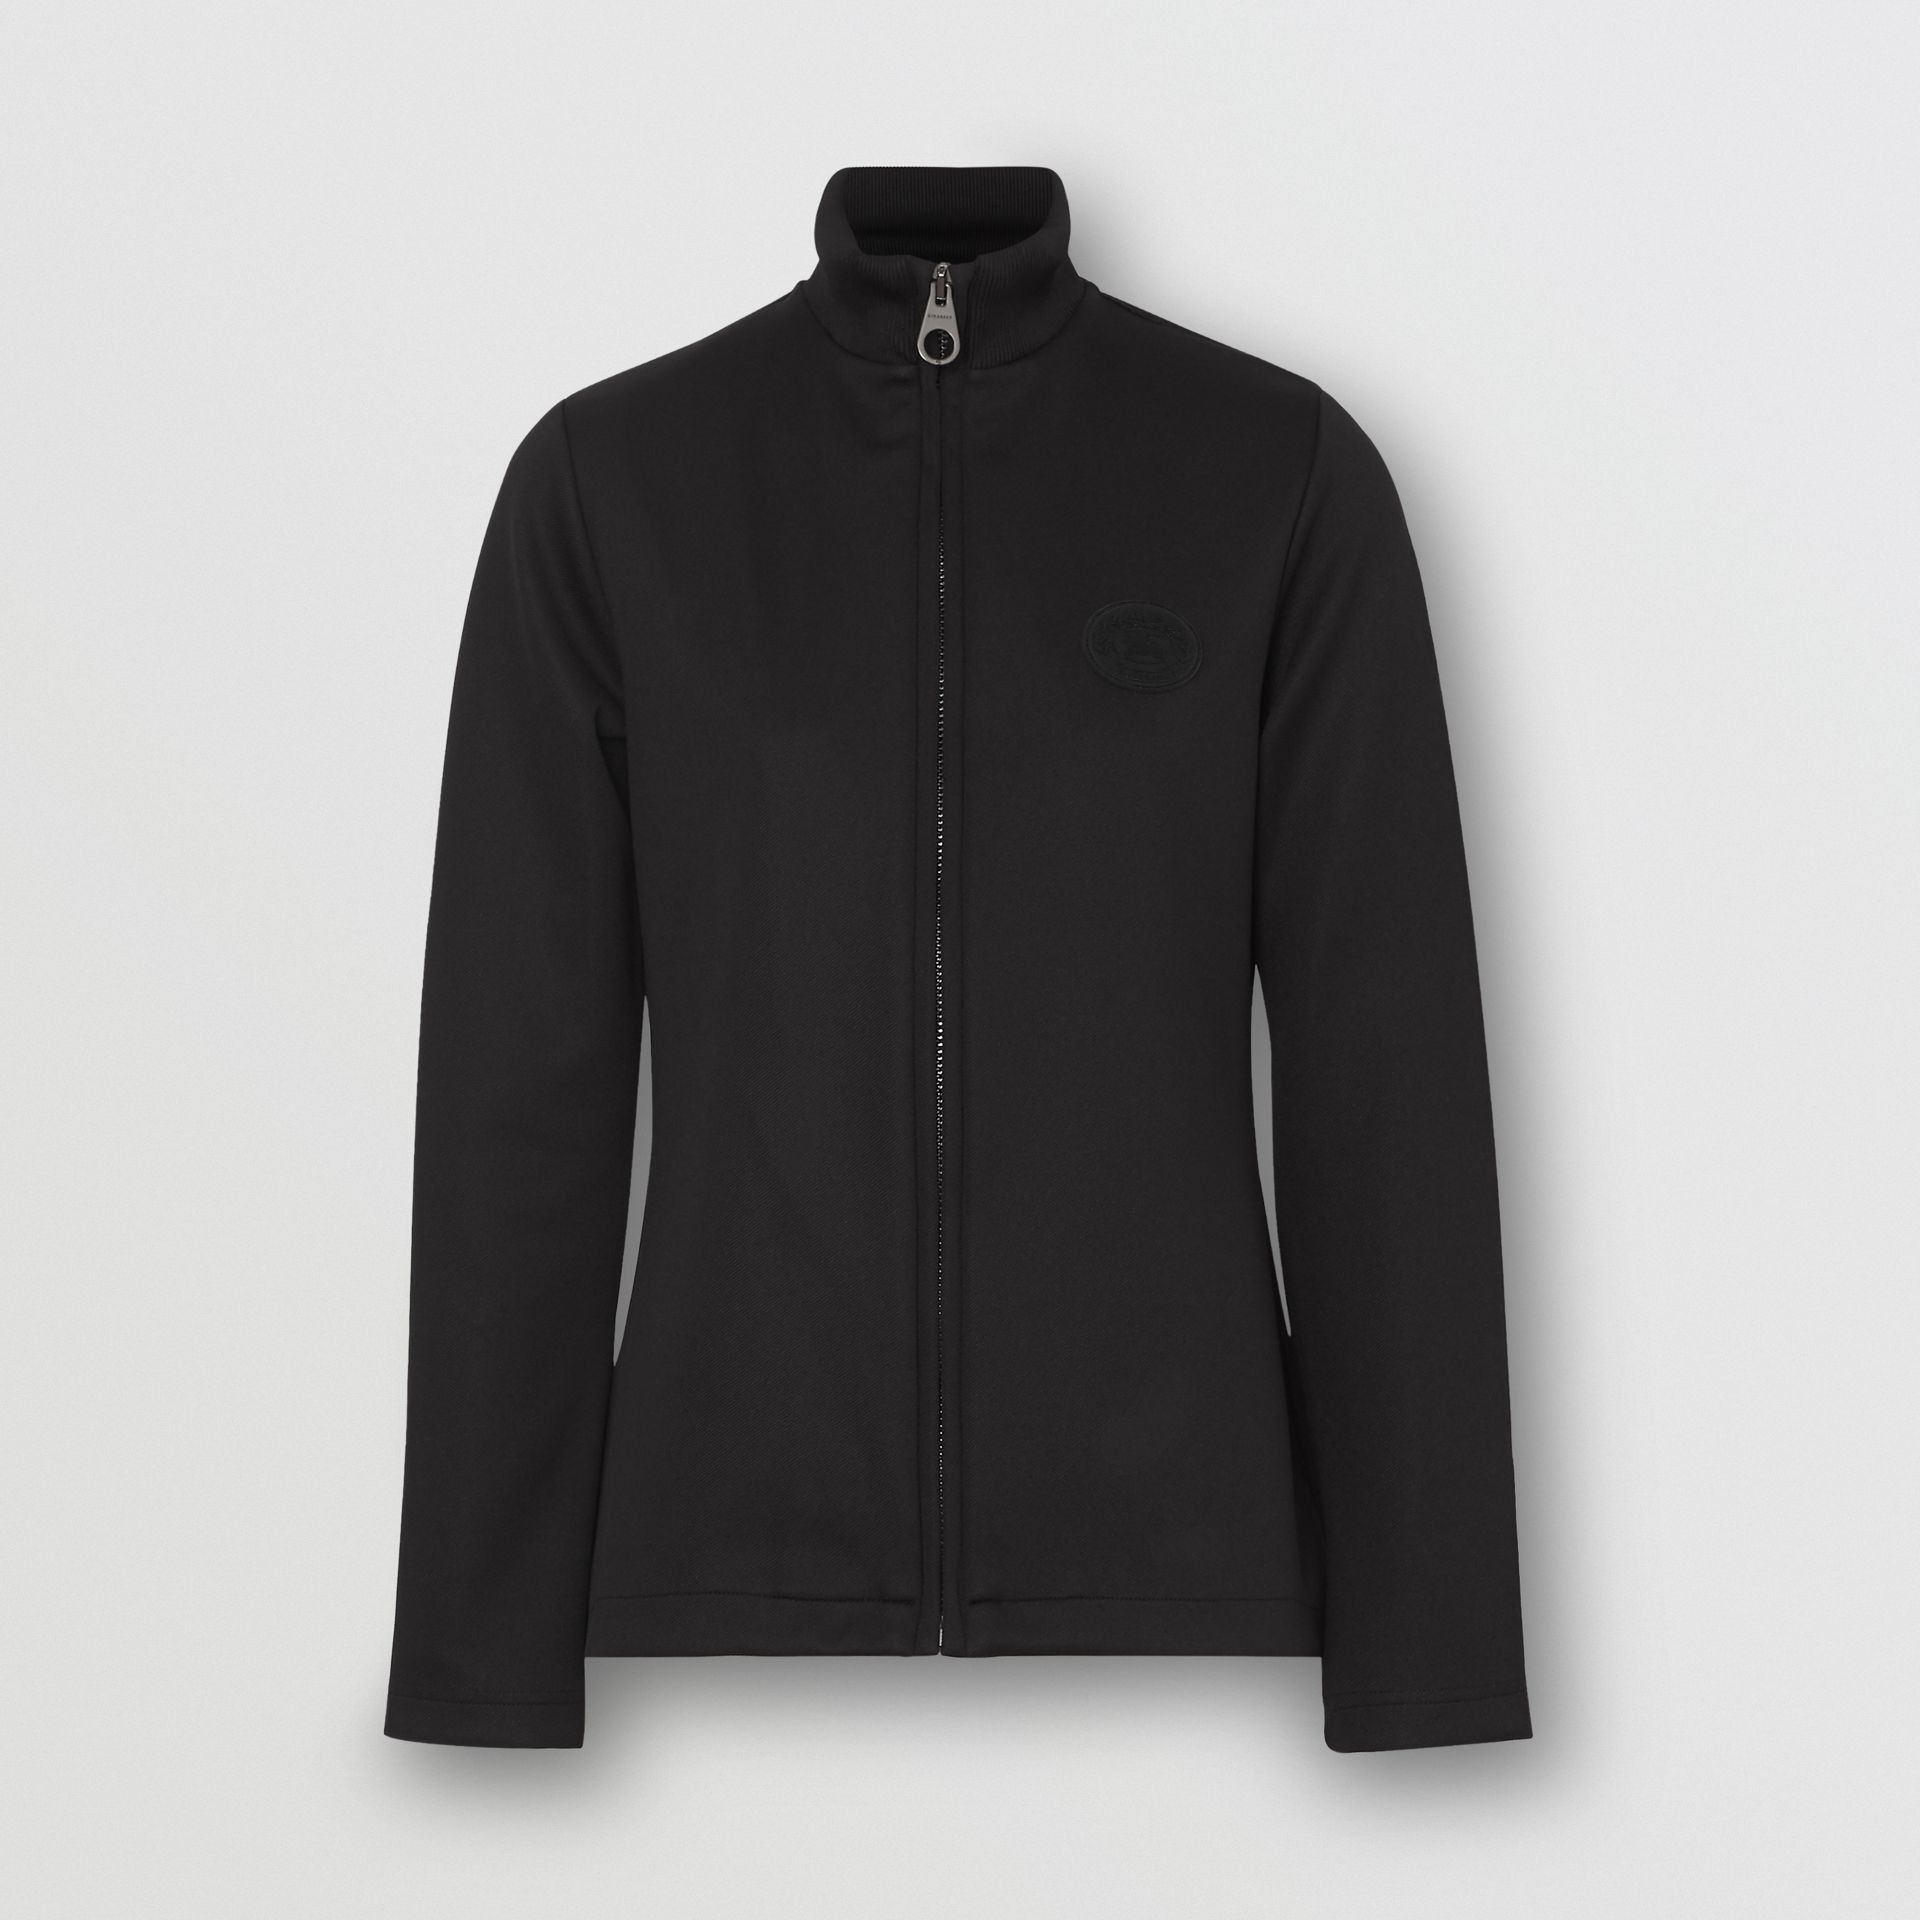 Crest Detail Funnel Neck Track Top in Black - Women | Burberry United States - gallery image 3